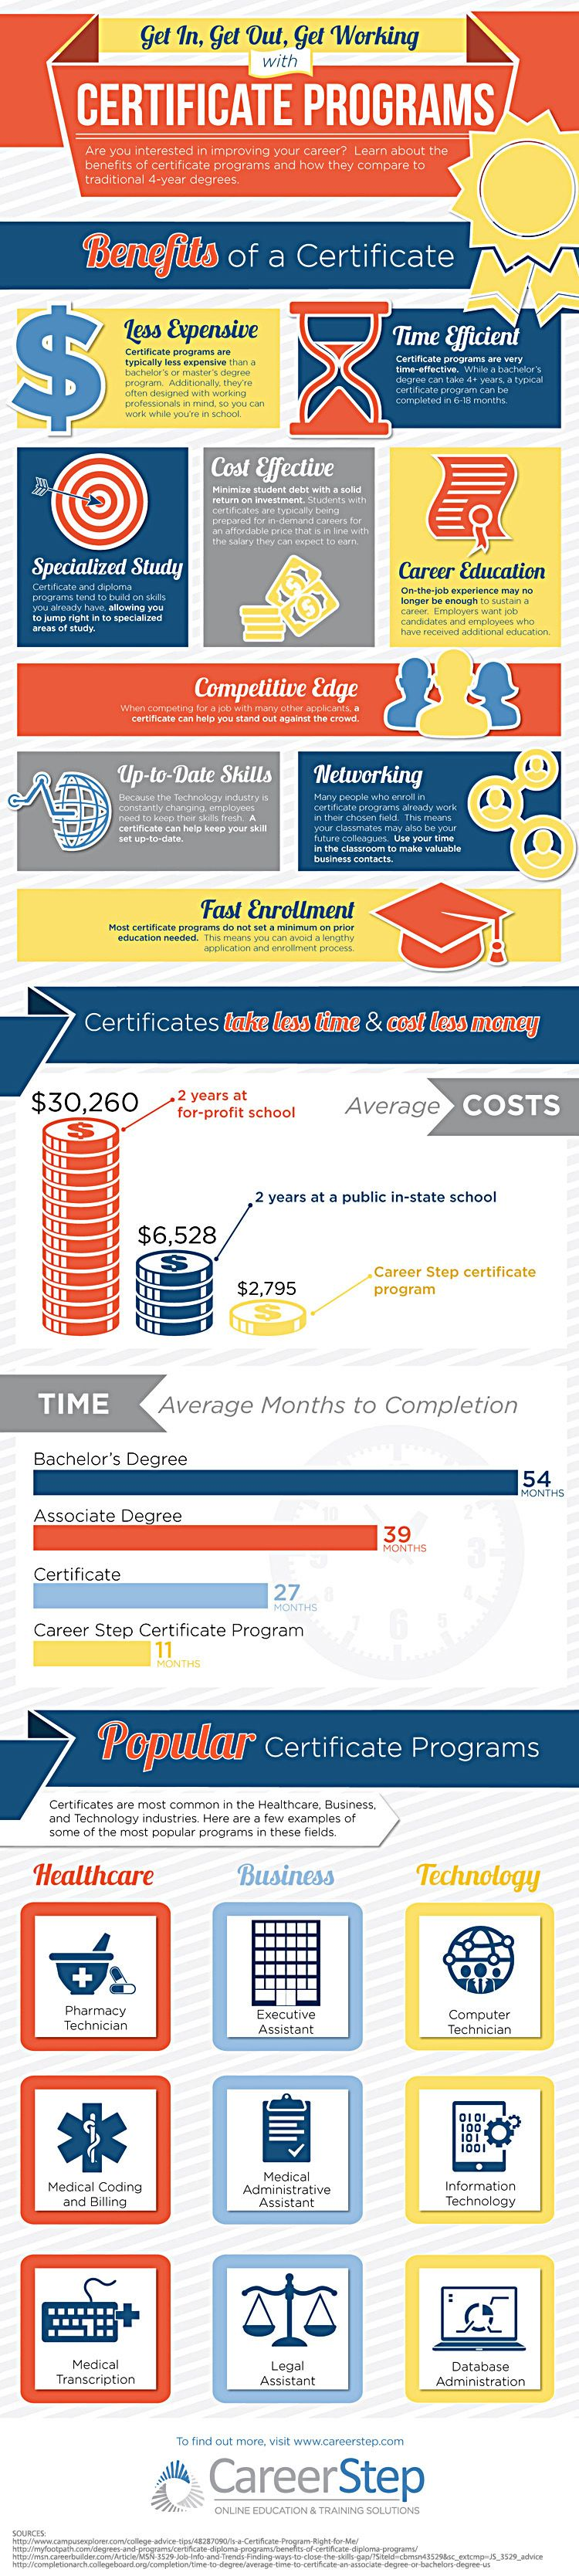 Benefits Of Certificate Programs Including Medical Coding And